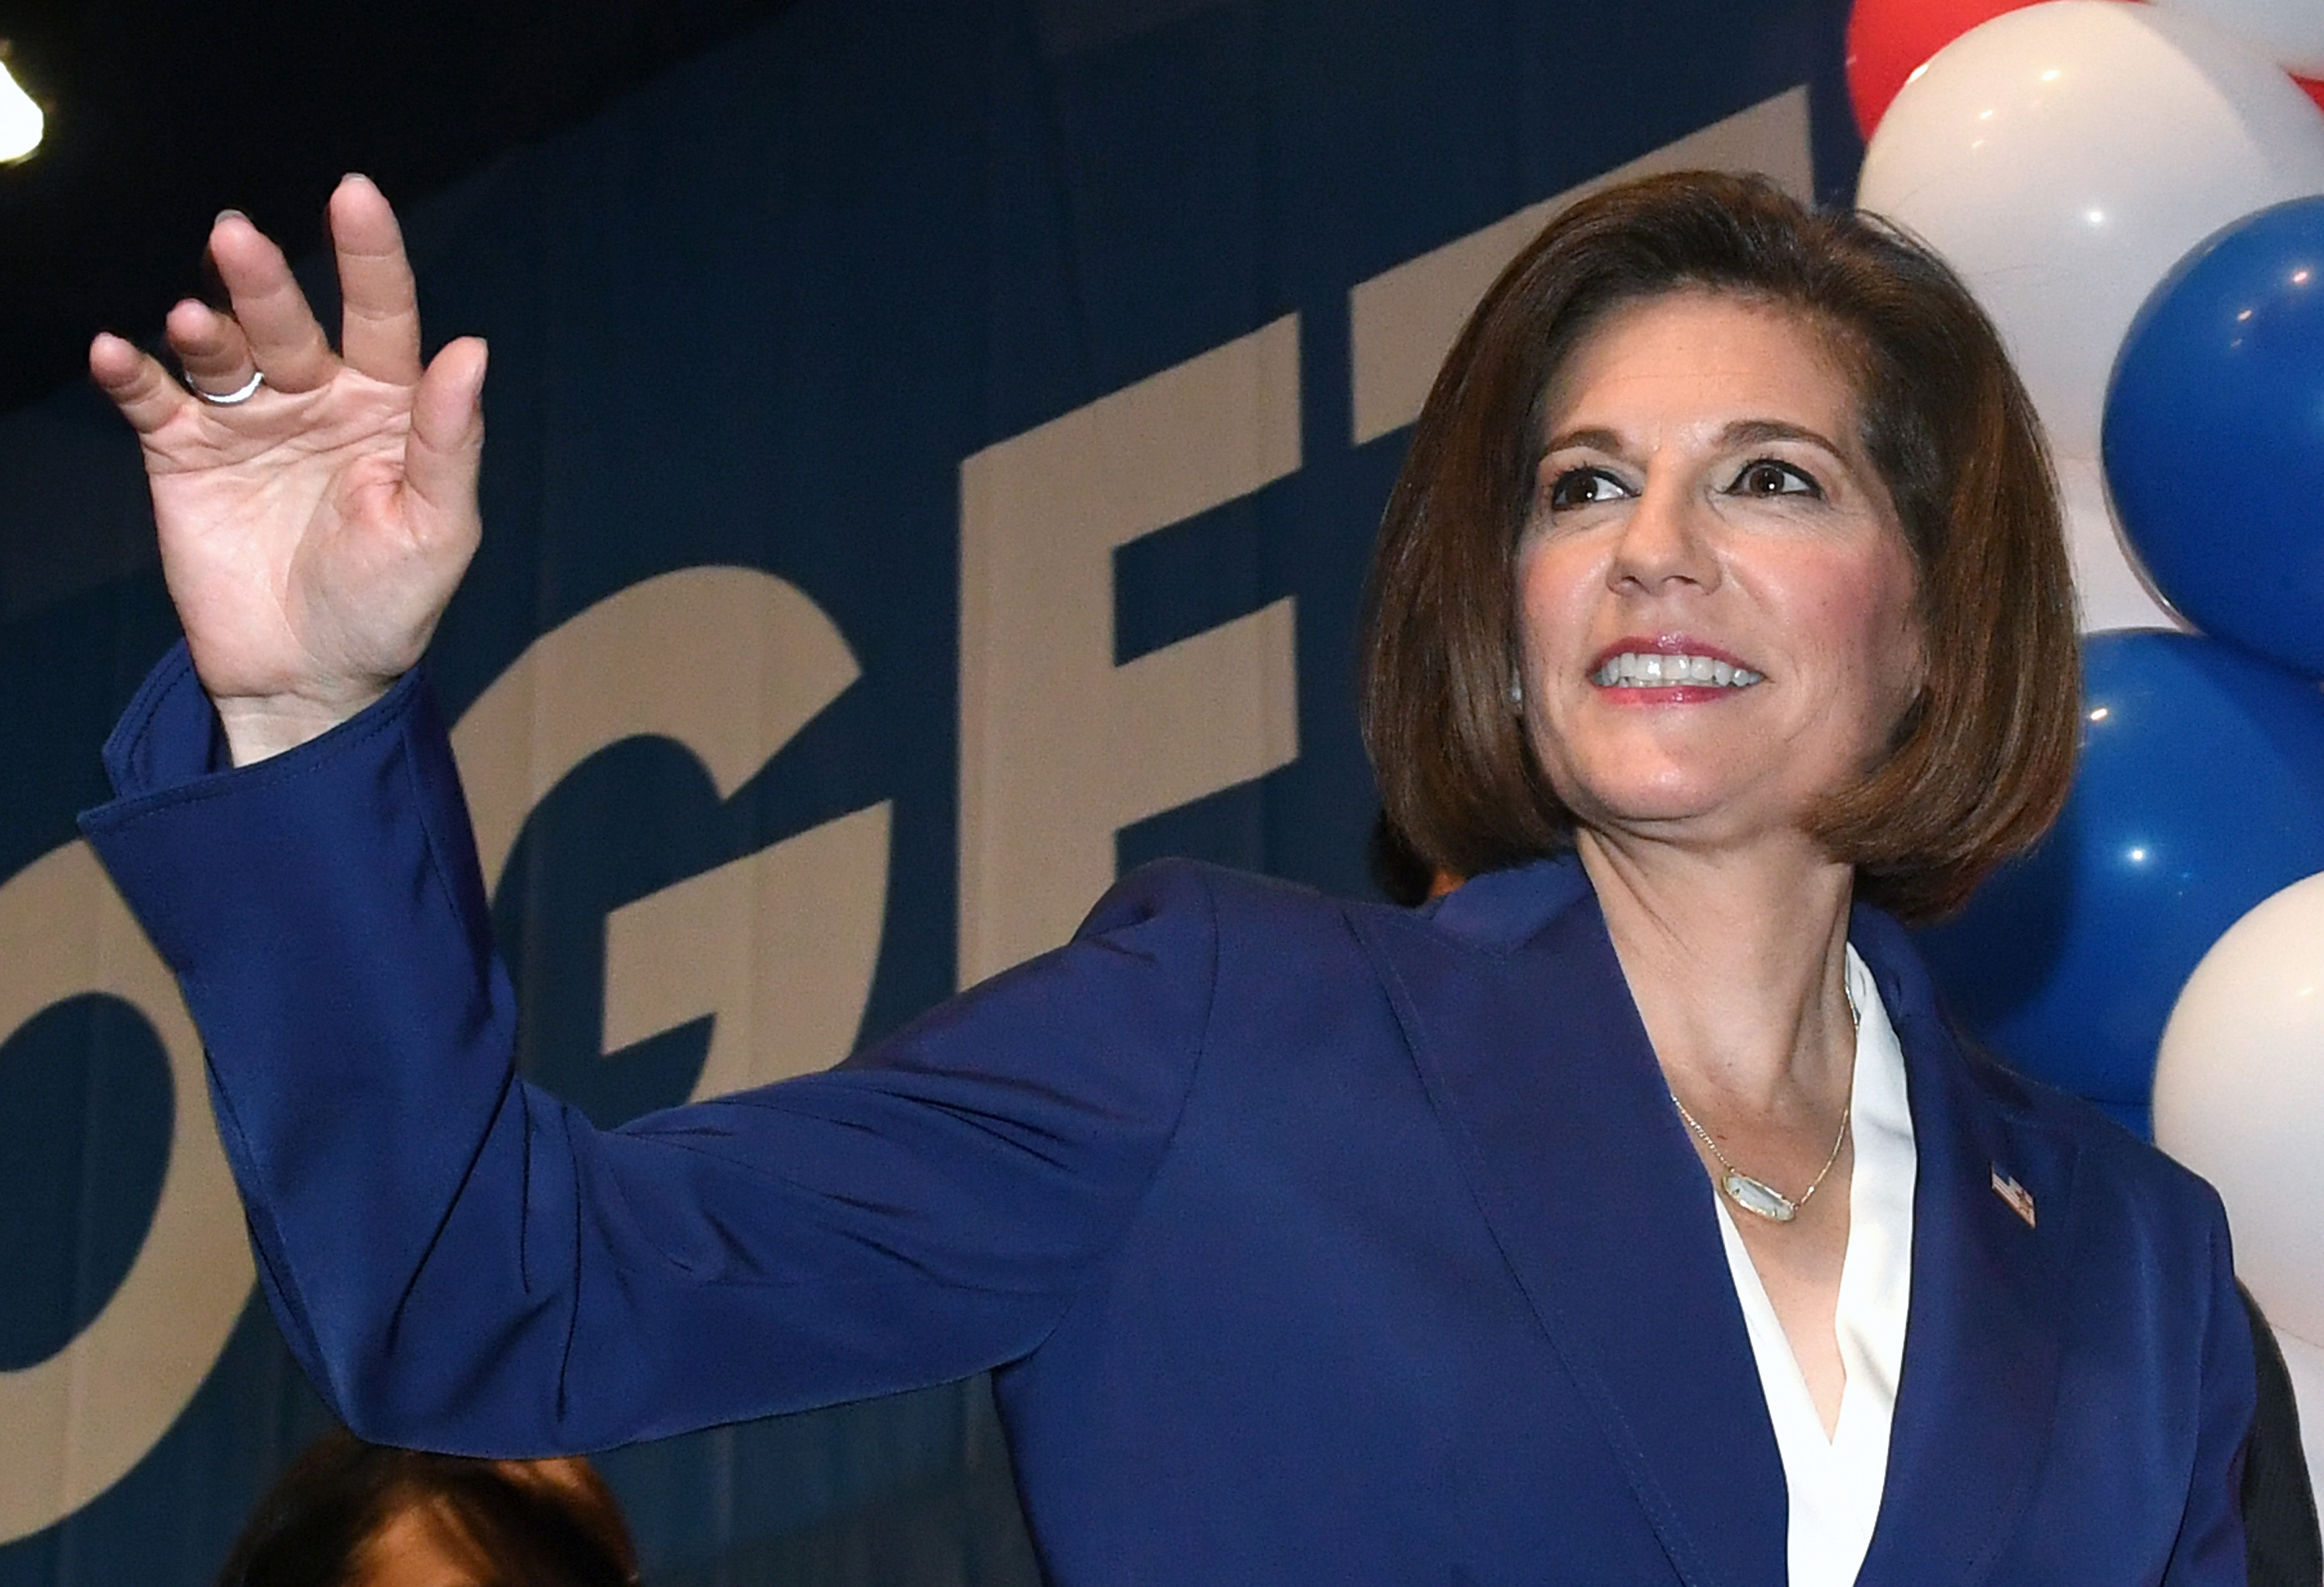 Nevada Sen. Catherine Cortez Masto pulls name from Biden running mate consideration